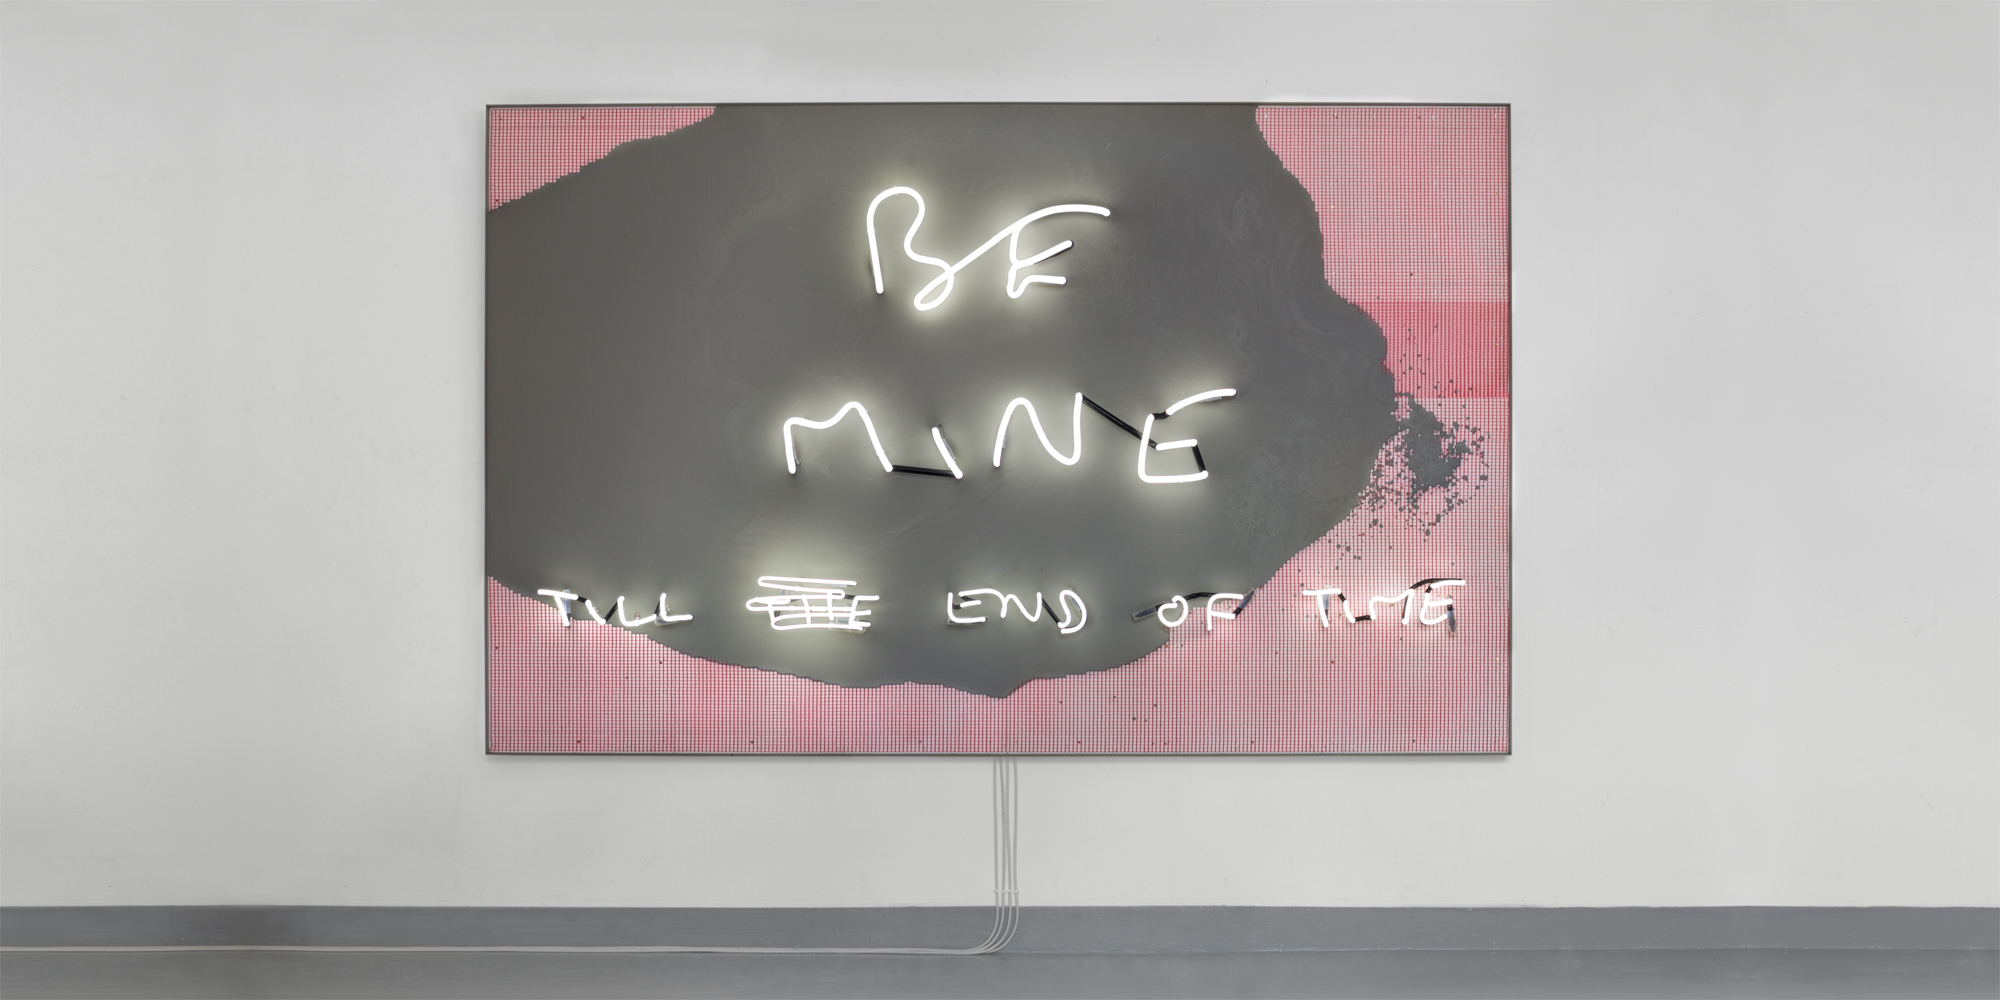 Be Mine (Till End of Time), 2019